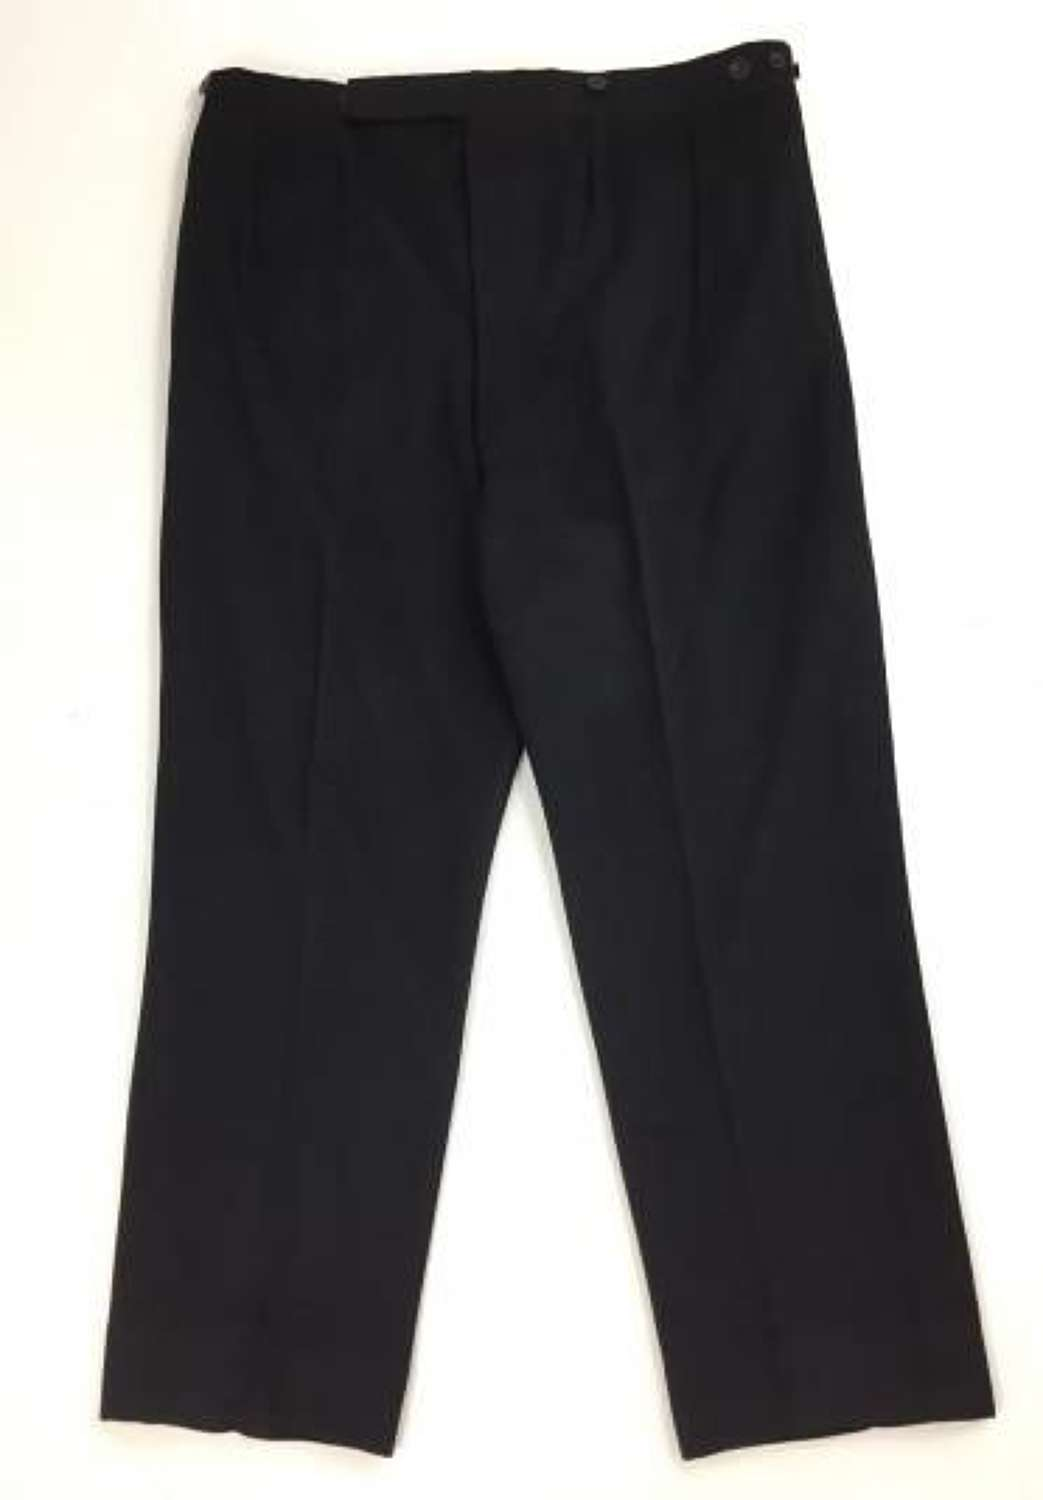 Original 1950s Royal Navy Officers Trousers